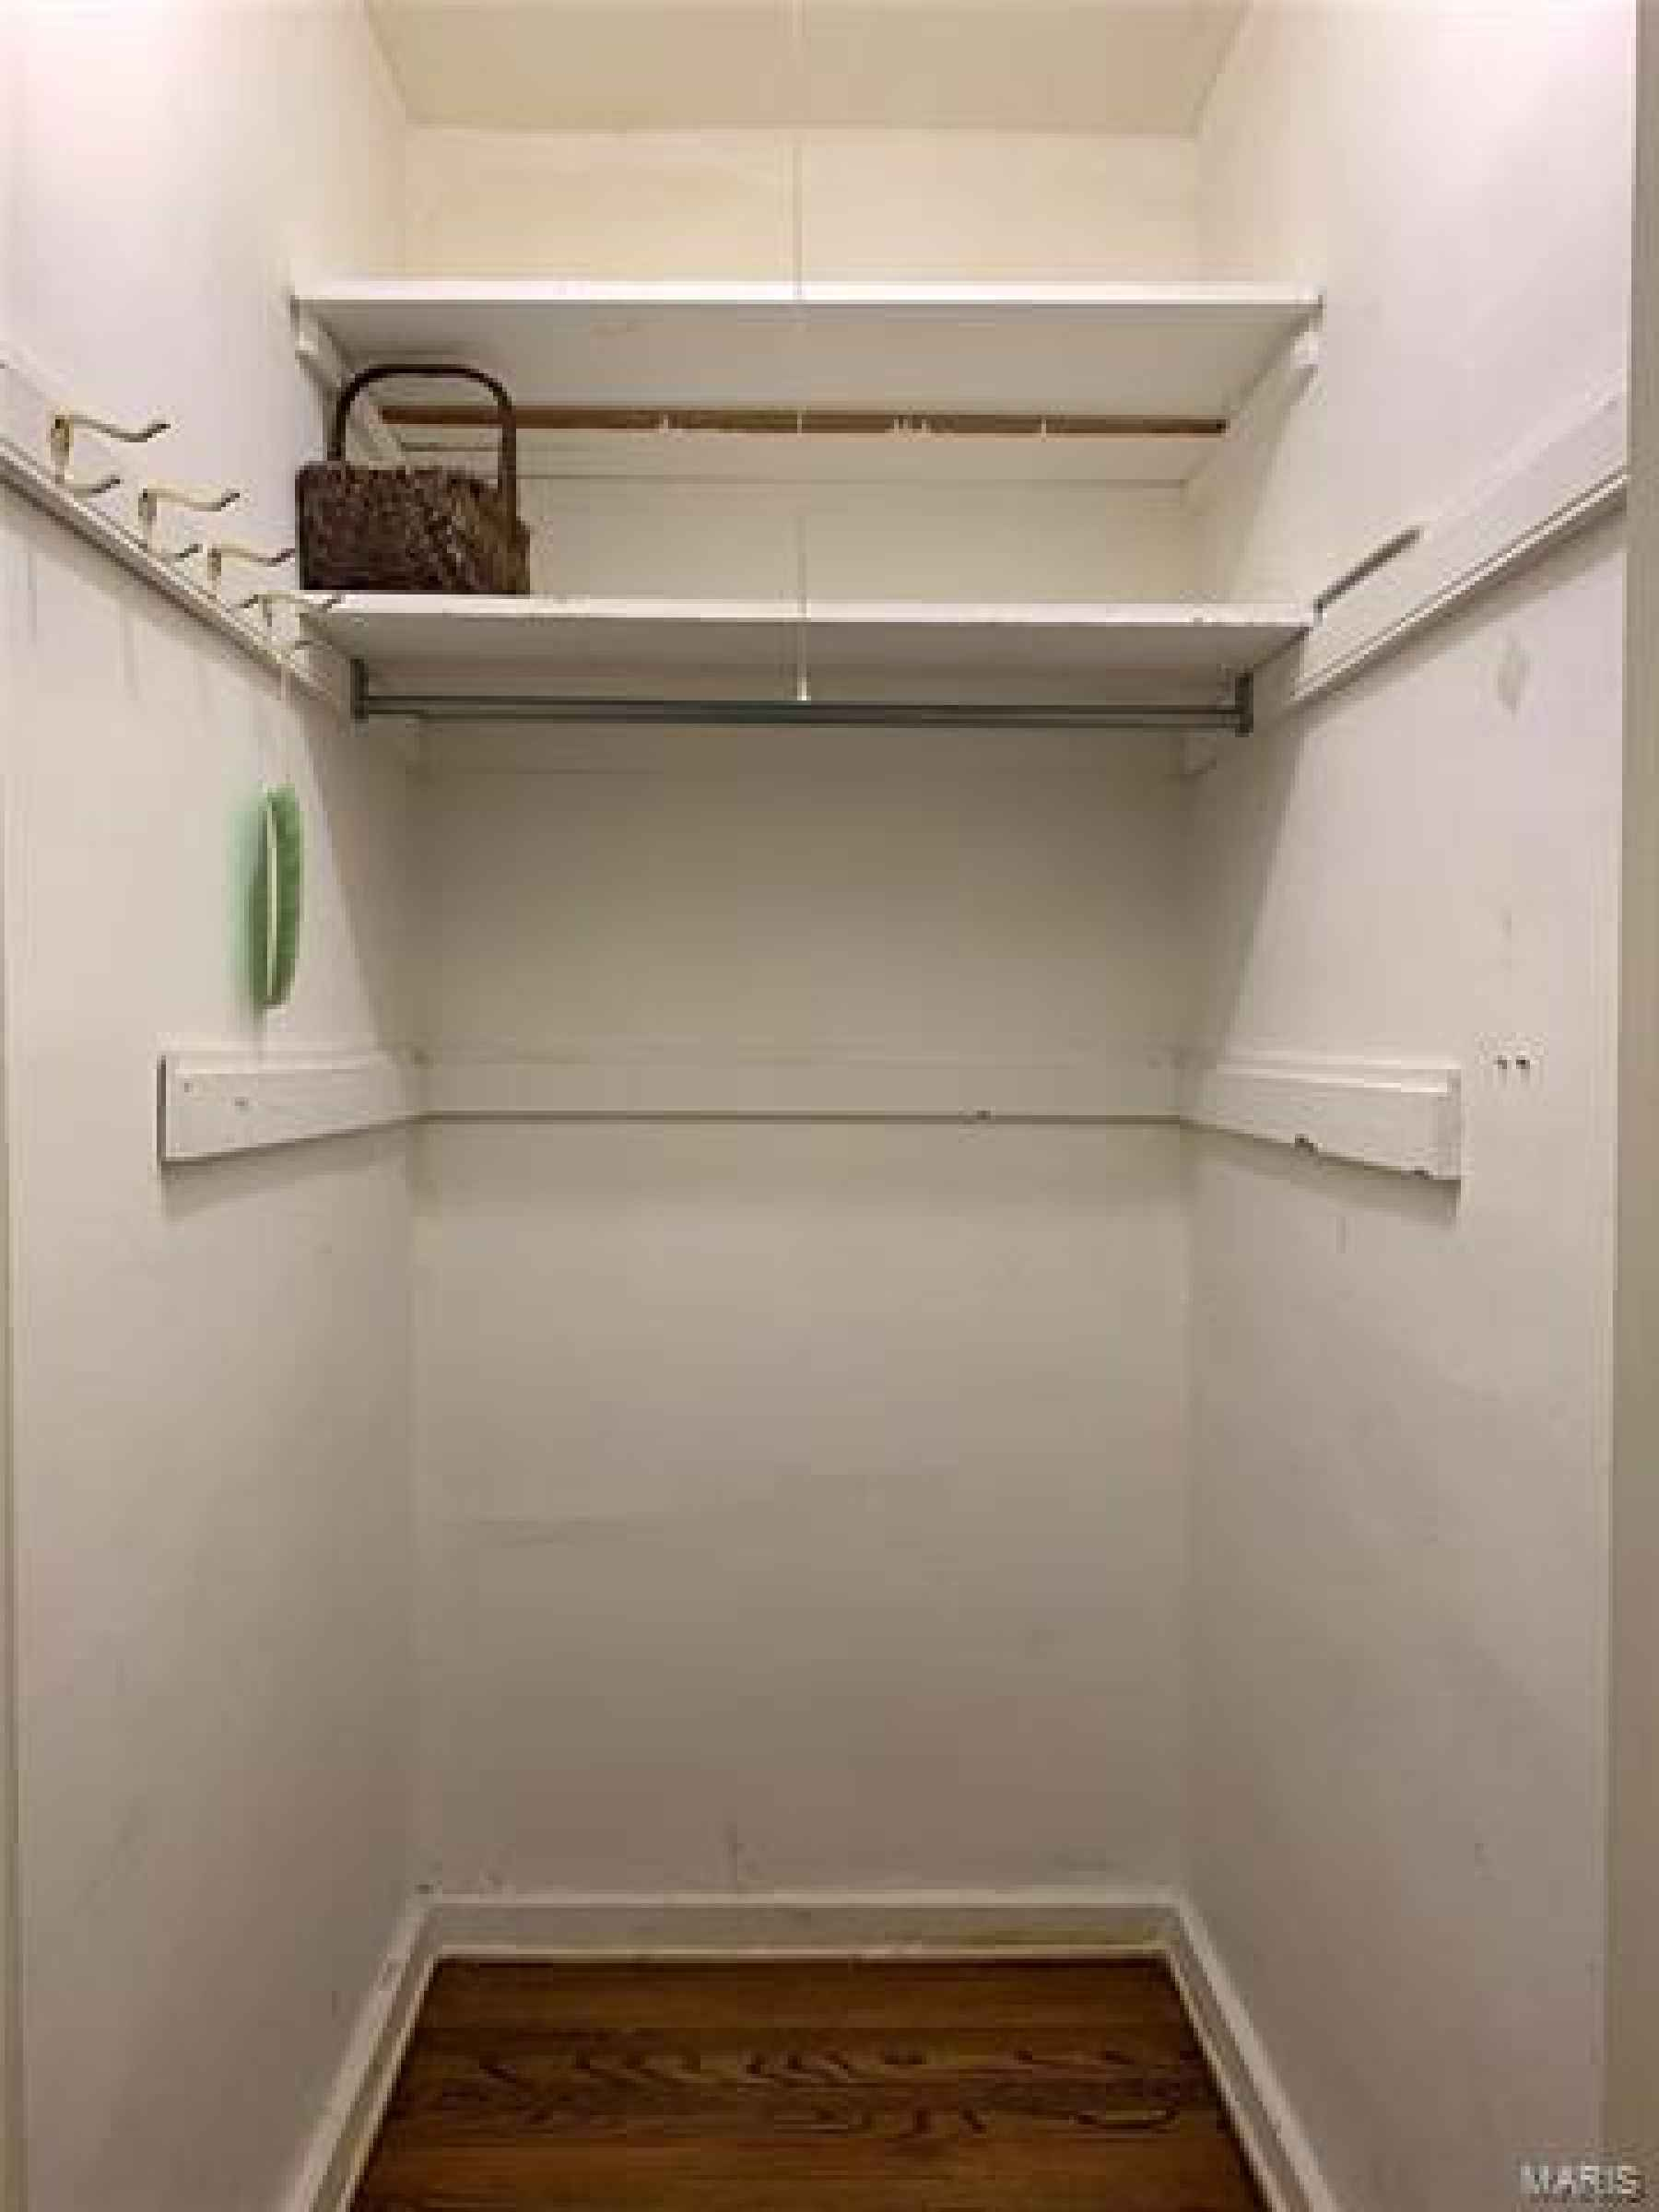 Walk-in Closet on Main Level - Located in Hallway - Would be excellent space to extend the kitchen and open into dining.